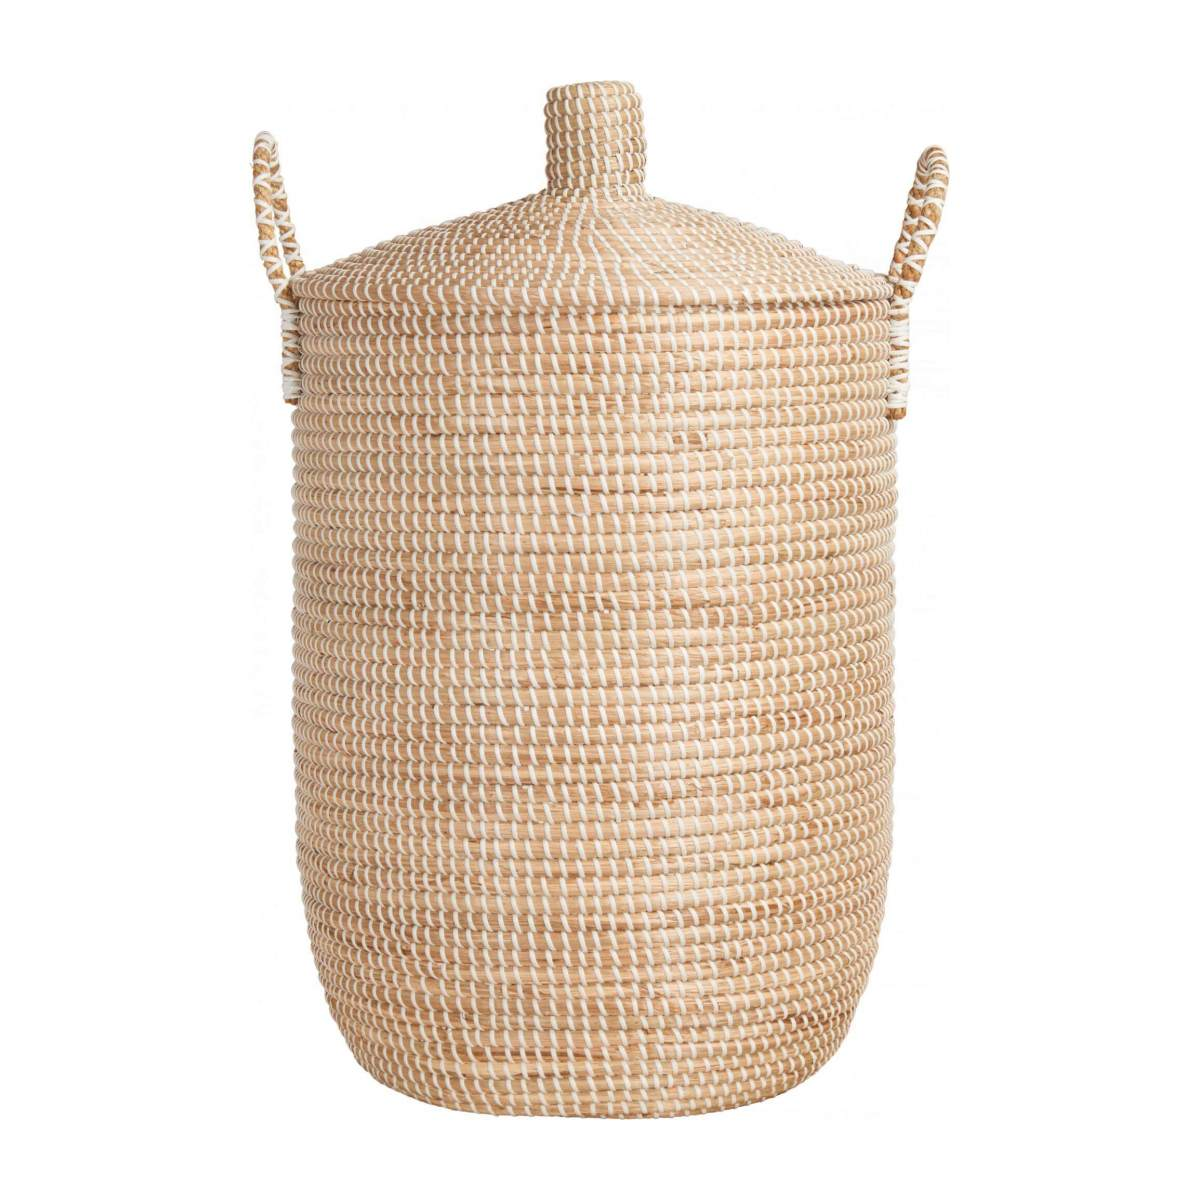 Basket 70cm with cover made of seagrass n°2